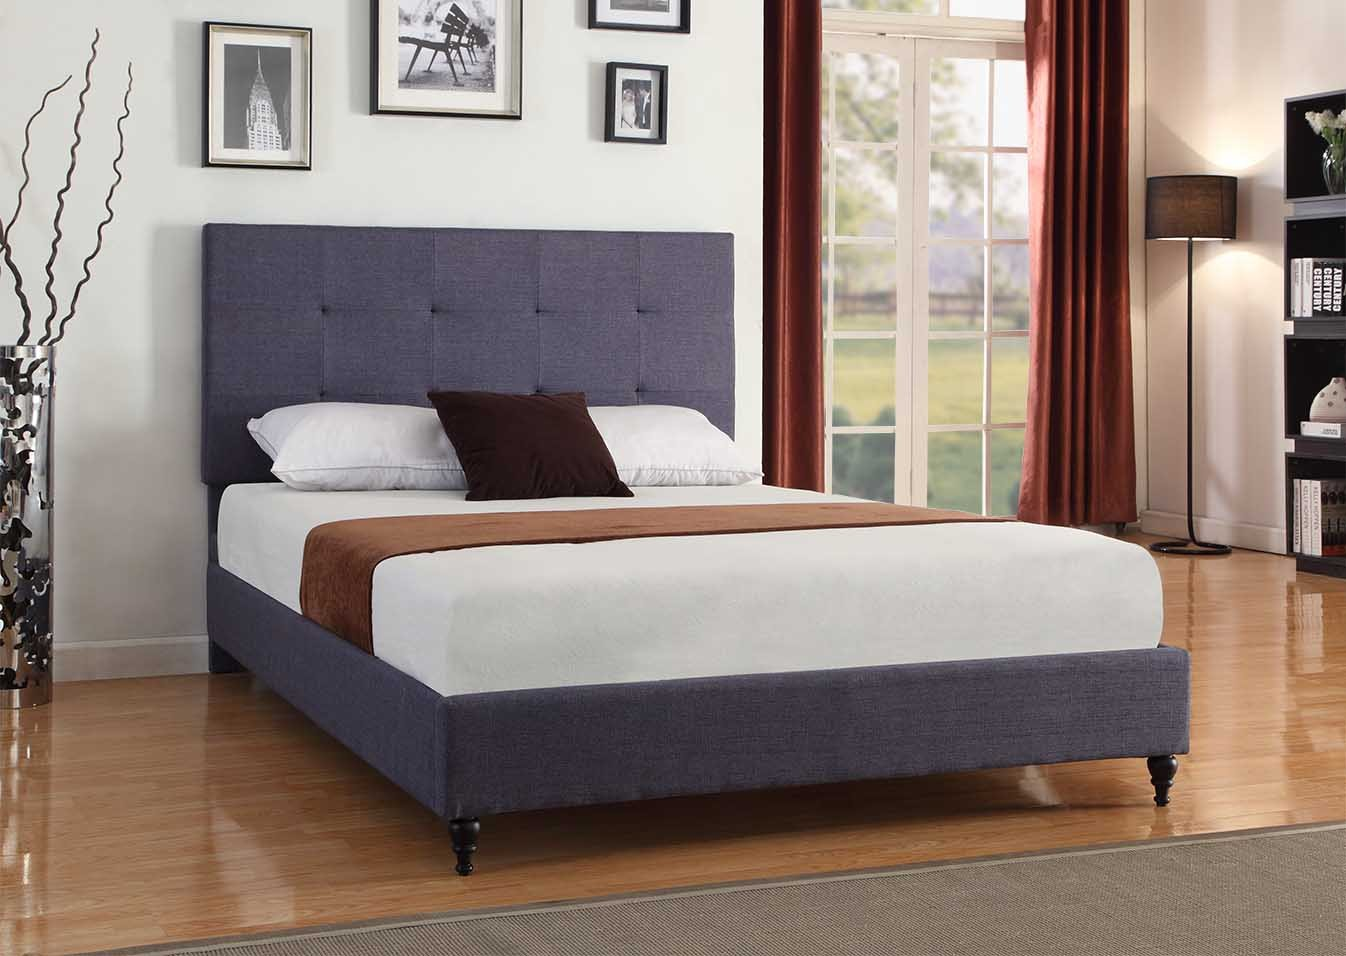 without buy flat is with low headboard king canada cheap frame queen stunning size fireplace bed nightstands a ideas of platform plank best popular tall what bedroom